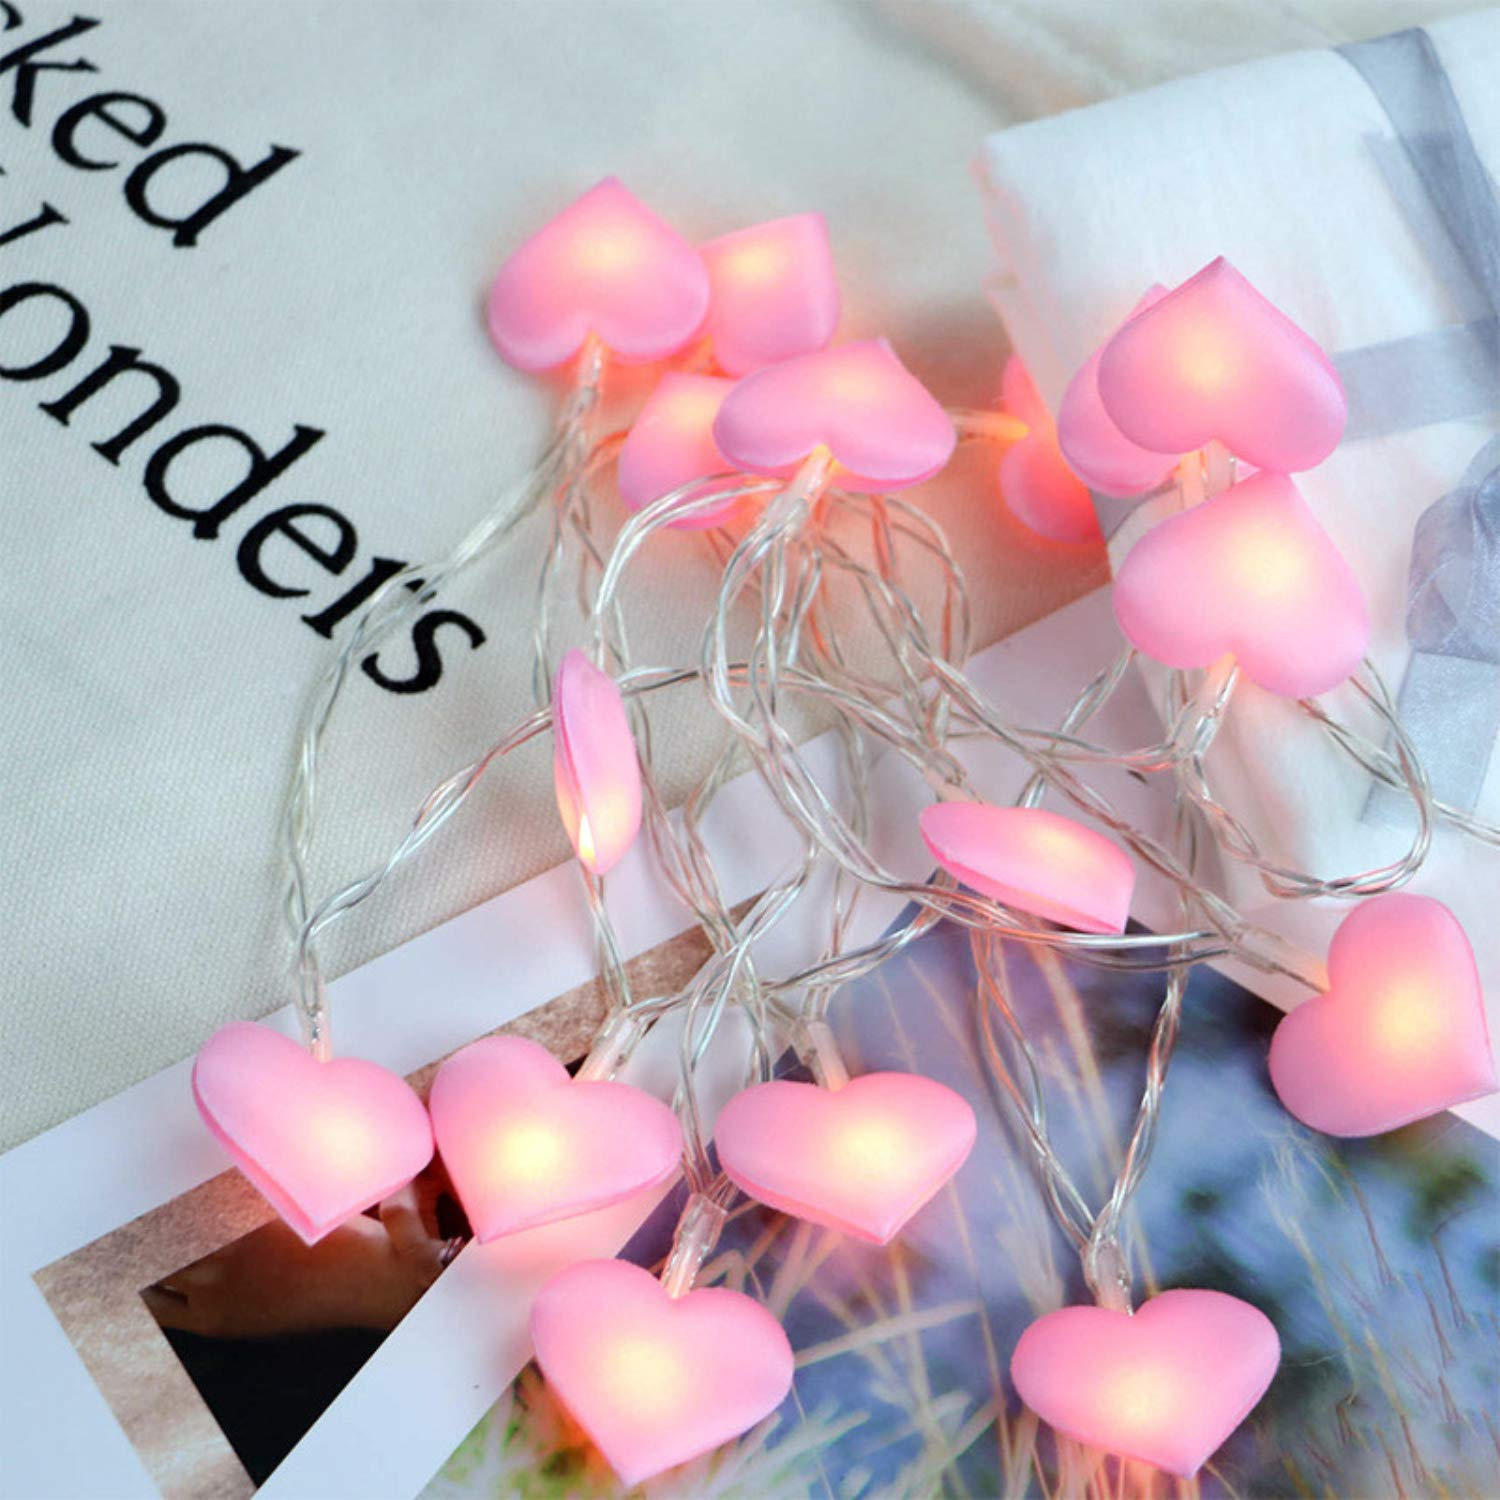 SSTQSAA 1.5M/3M 10/20pcs LED Copper Wire Heart-Shaped String Lights Battery Fairy Garland Lamp for Home Bedroom Decor (Pink, 3)